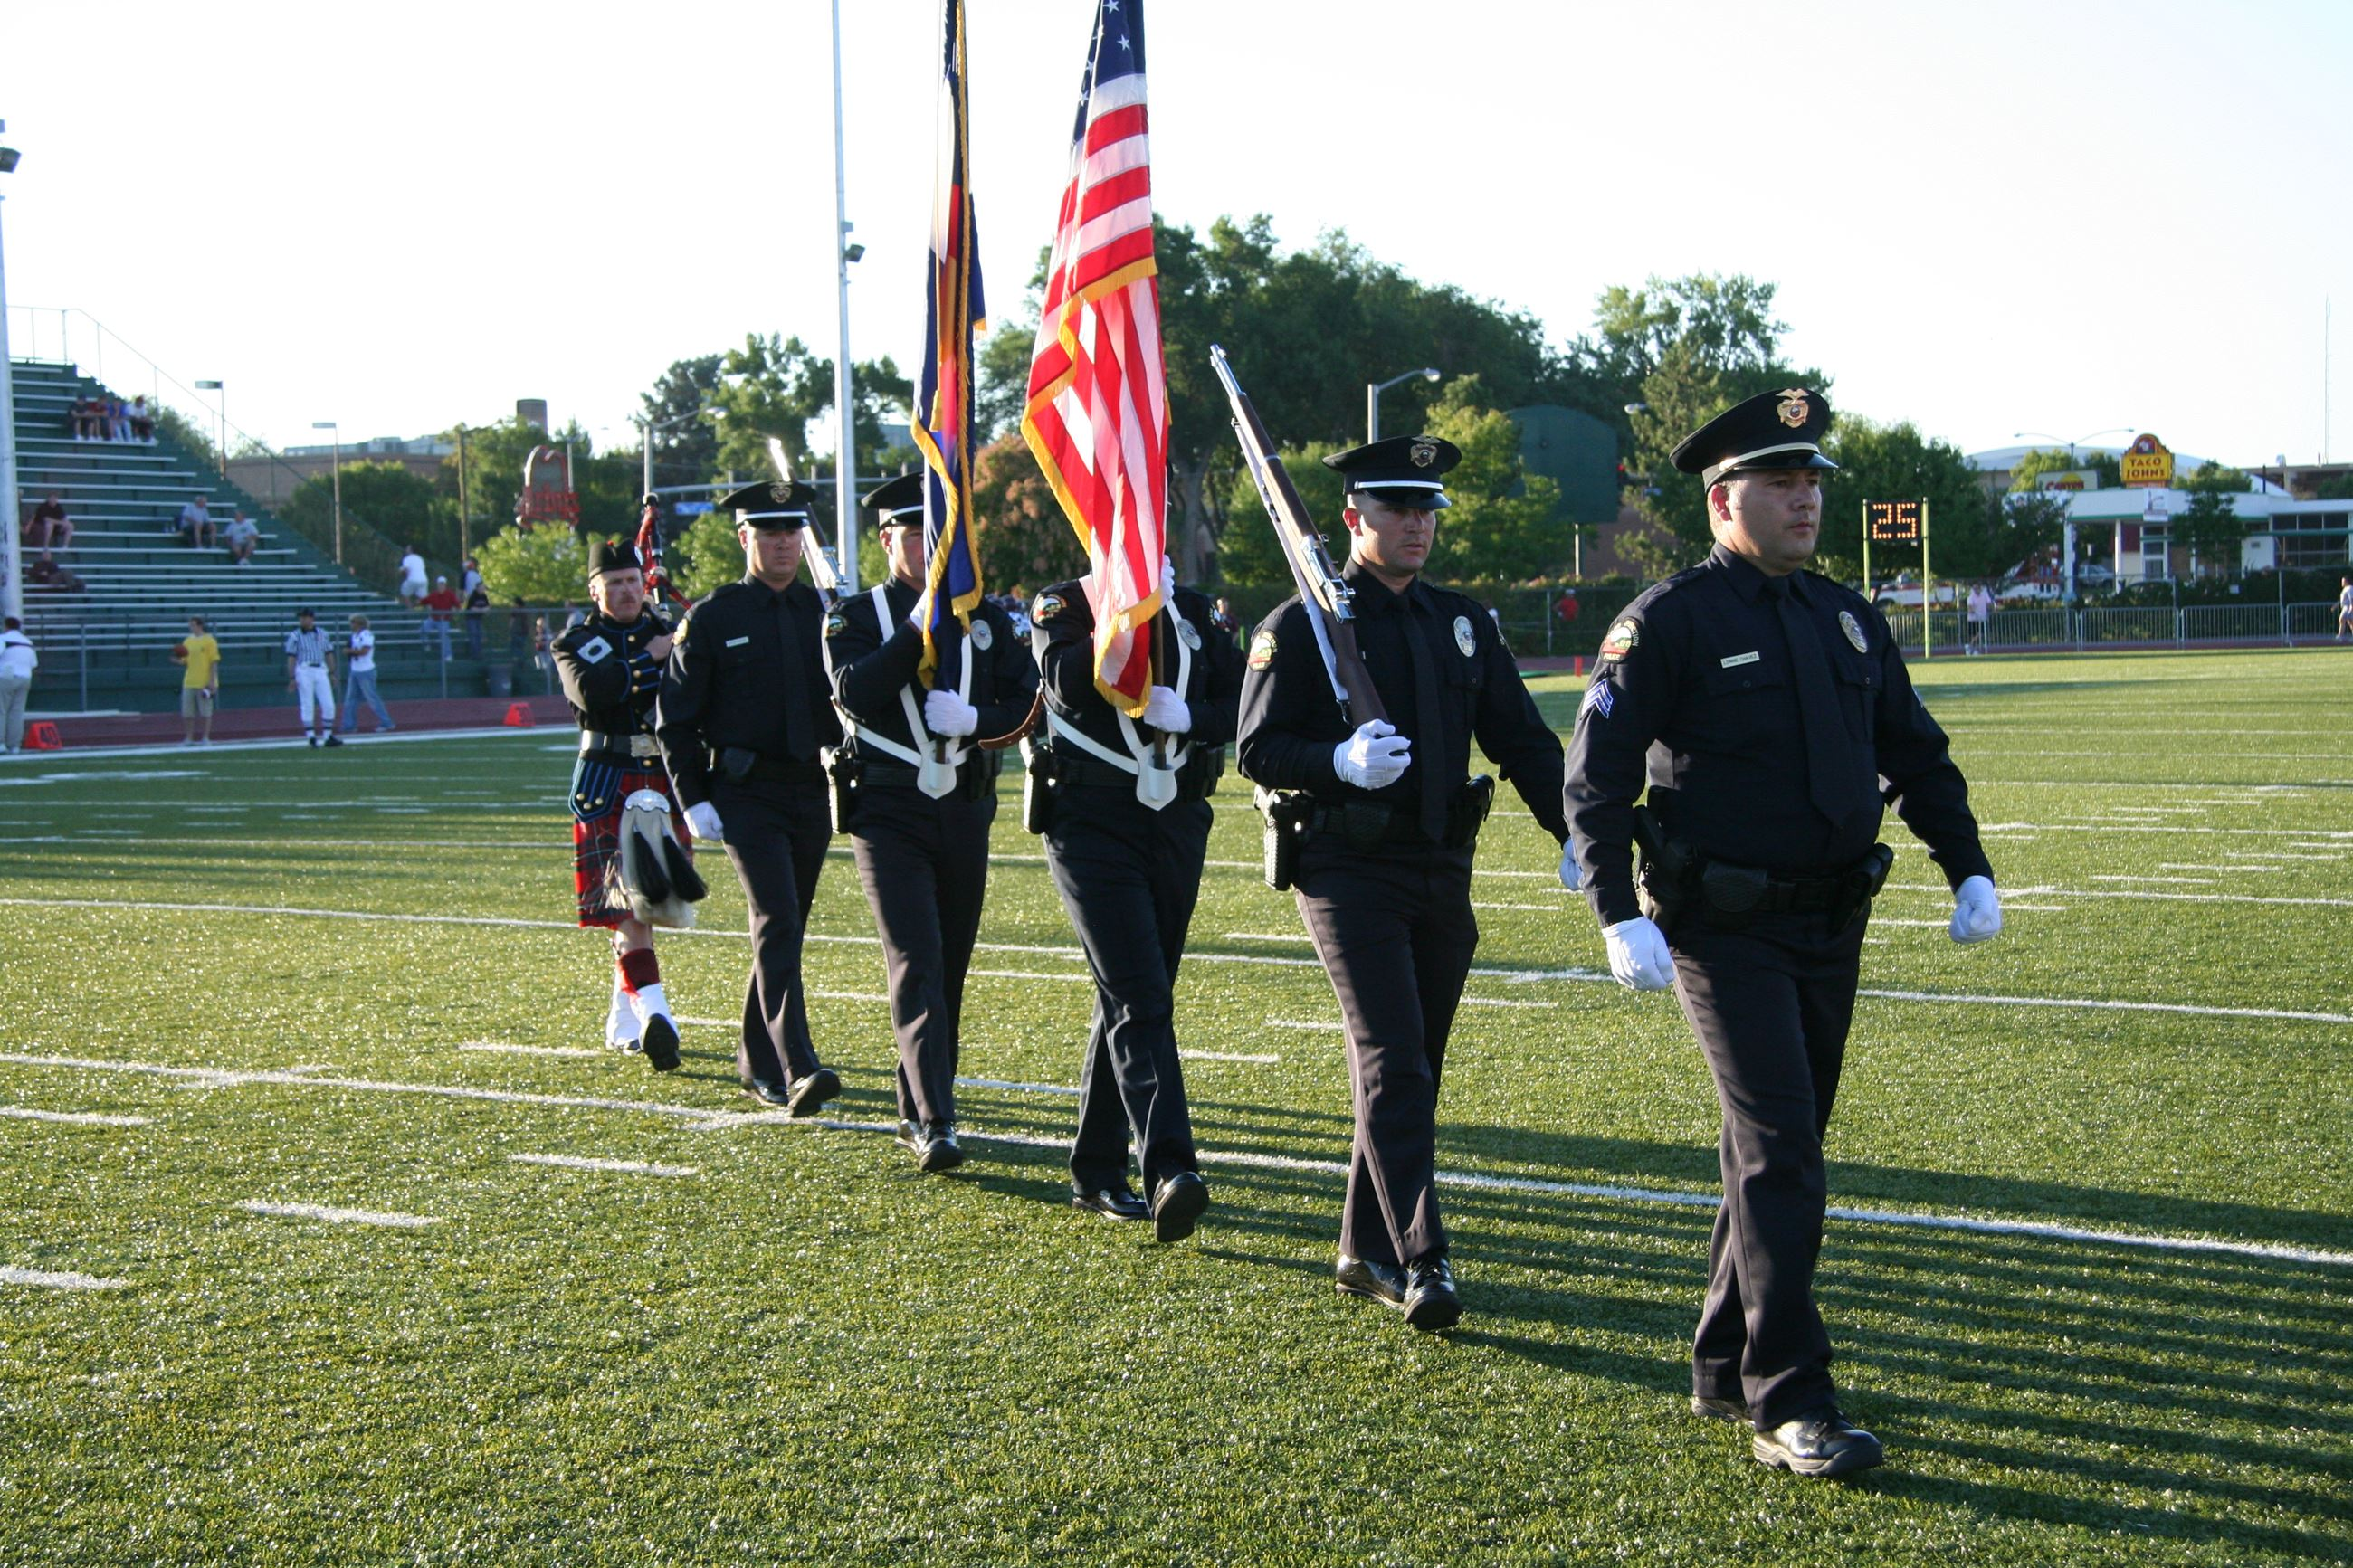 GJPD Honor Guard marching